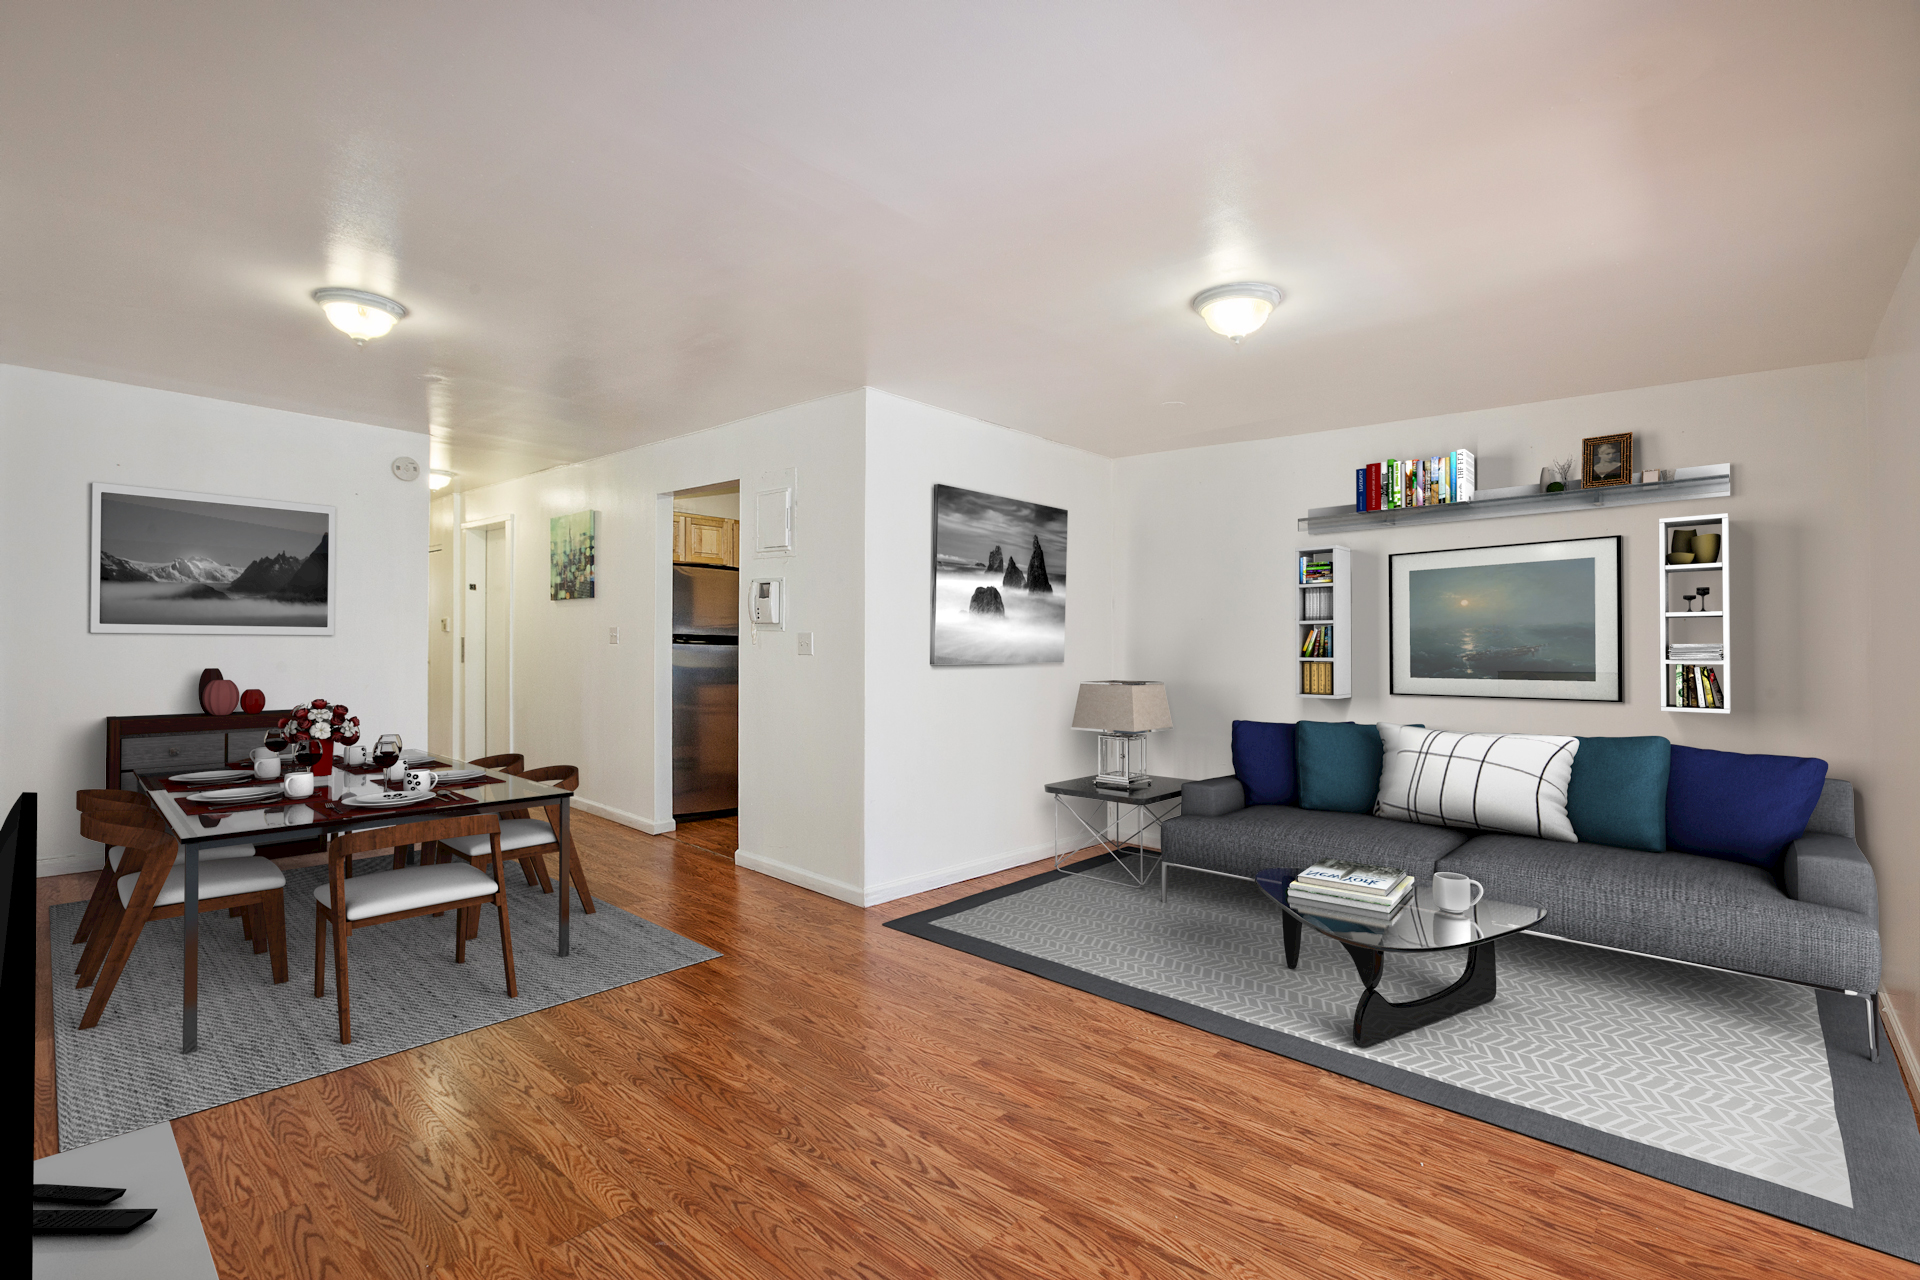 229 East 24th St #3  |  $7,795/month